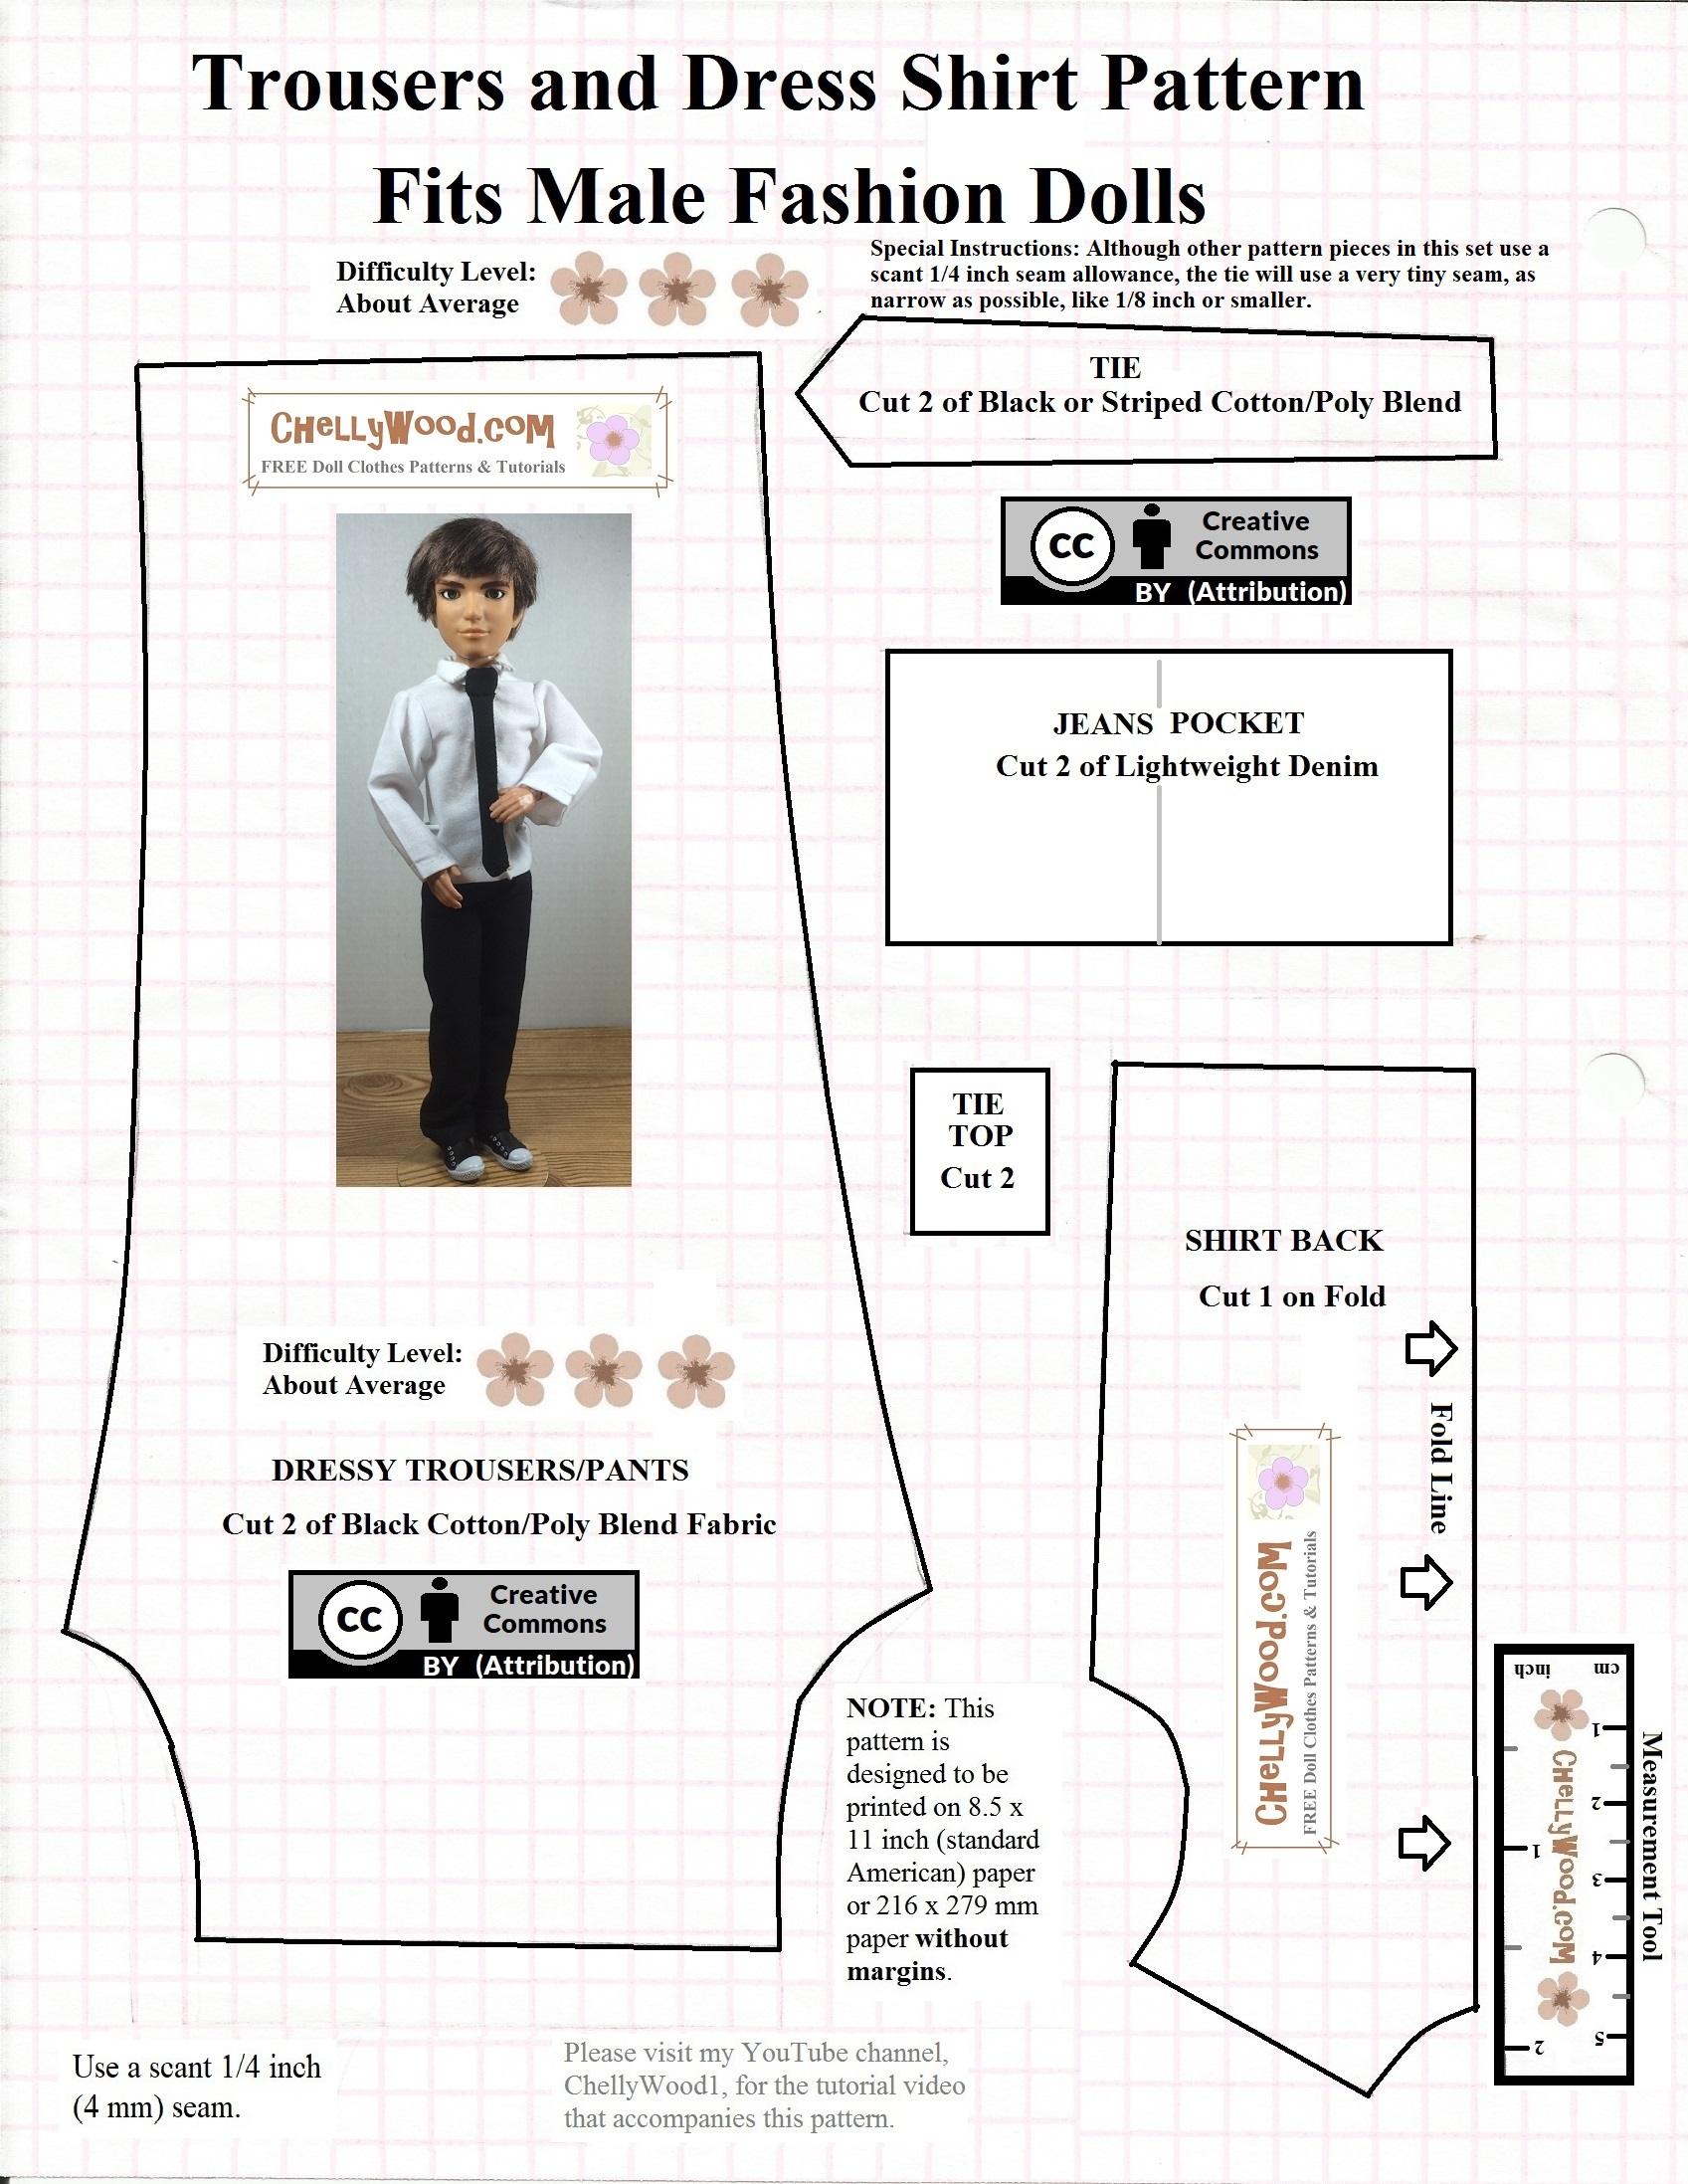 picture relating to Free Printable Ken Doll Clothes Patterns named Ken Routines Absolutely free Doll Apparel Behaviors